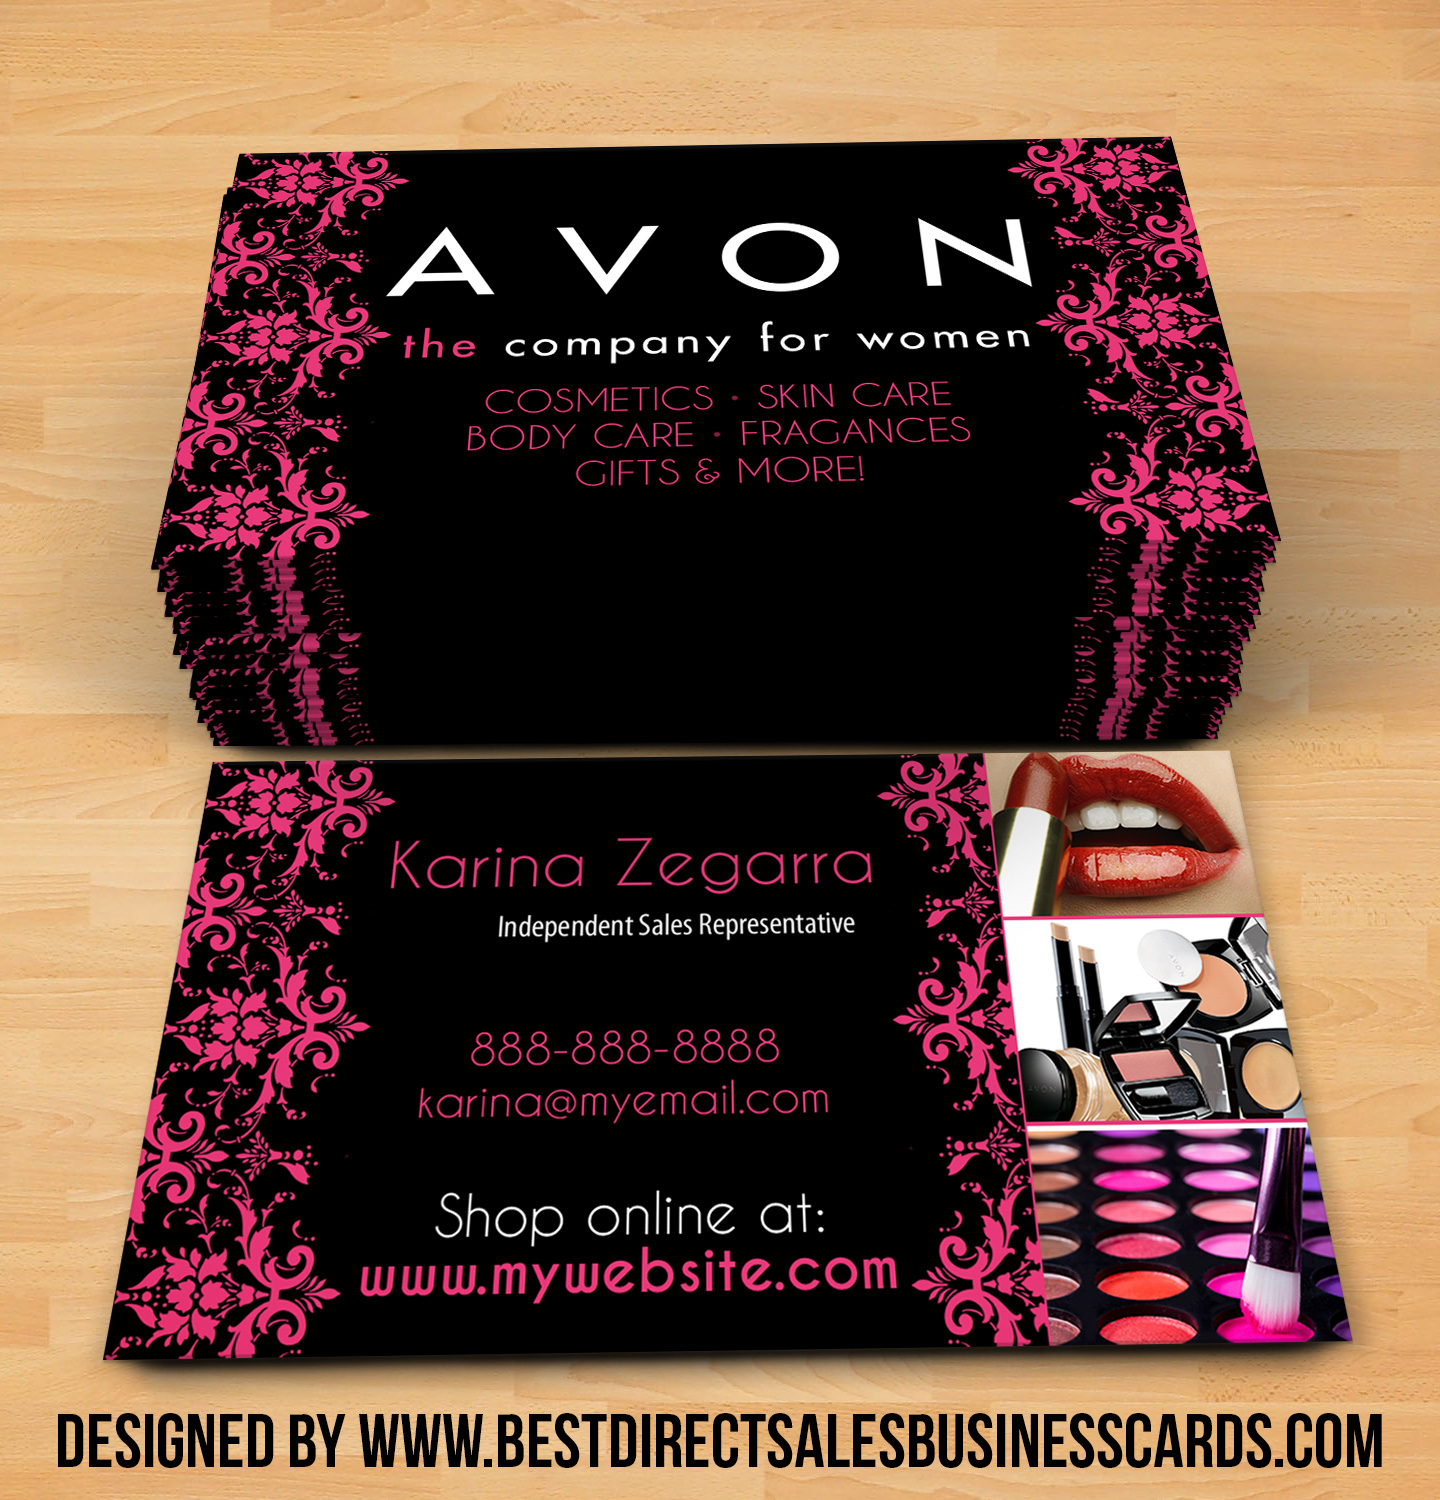 Beautiful Avon Business Cards style 5 · KZ Creative Services · Online Store  MX69